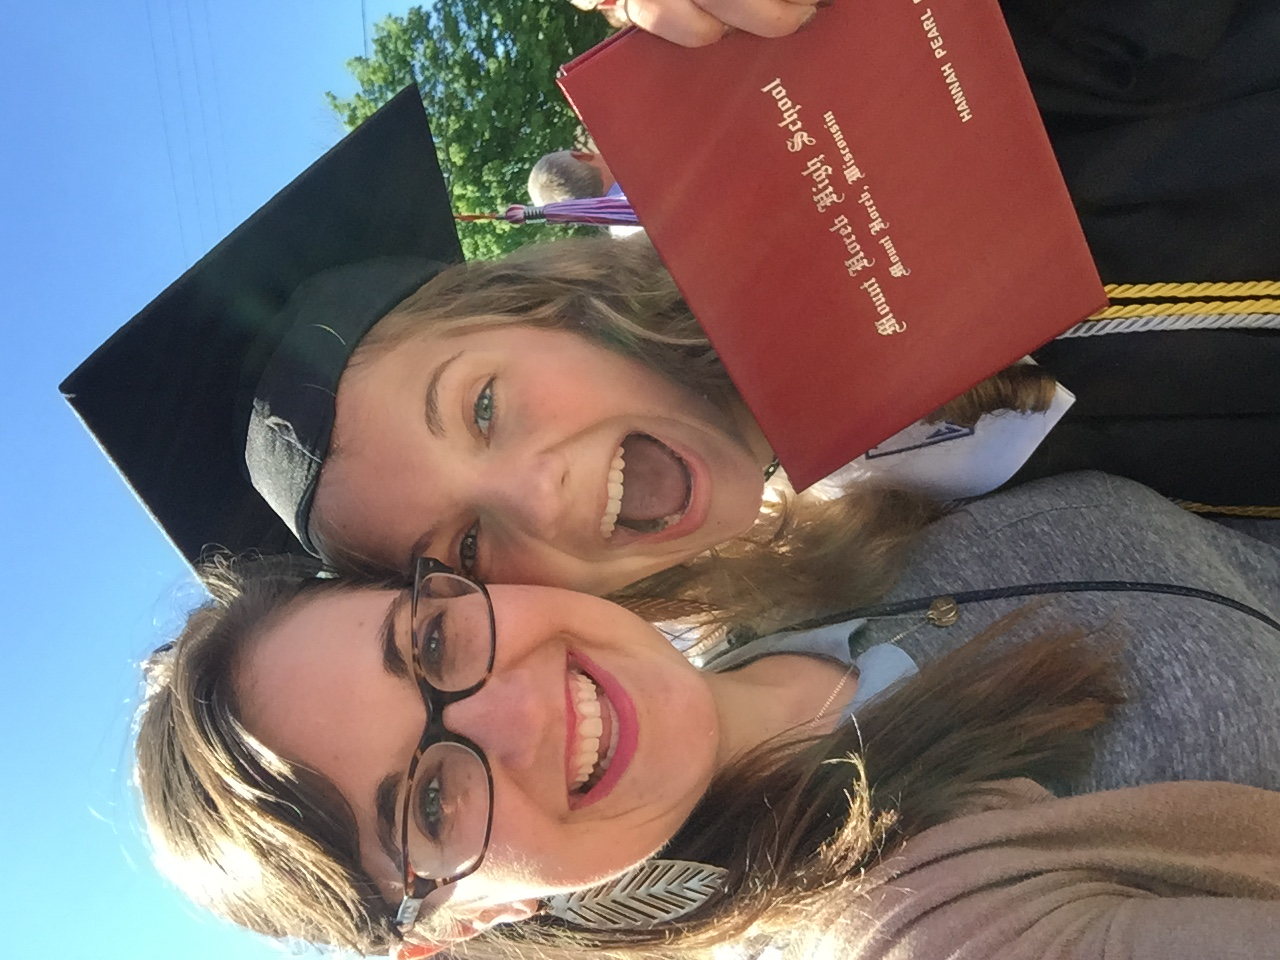 SHE DID IT!